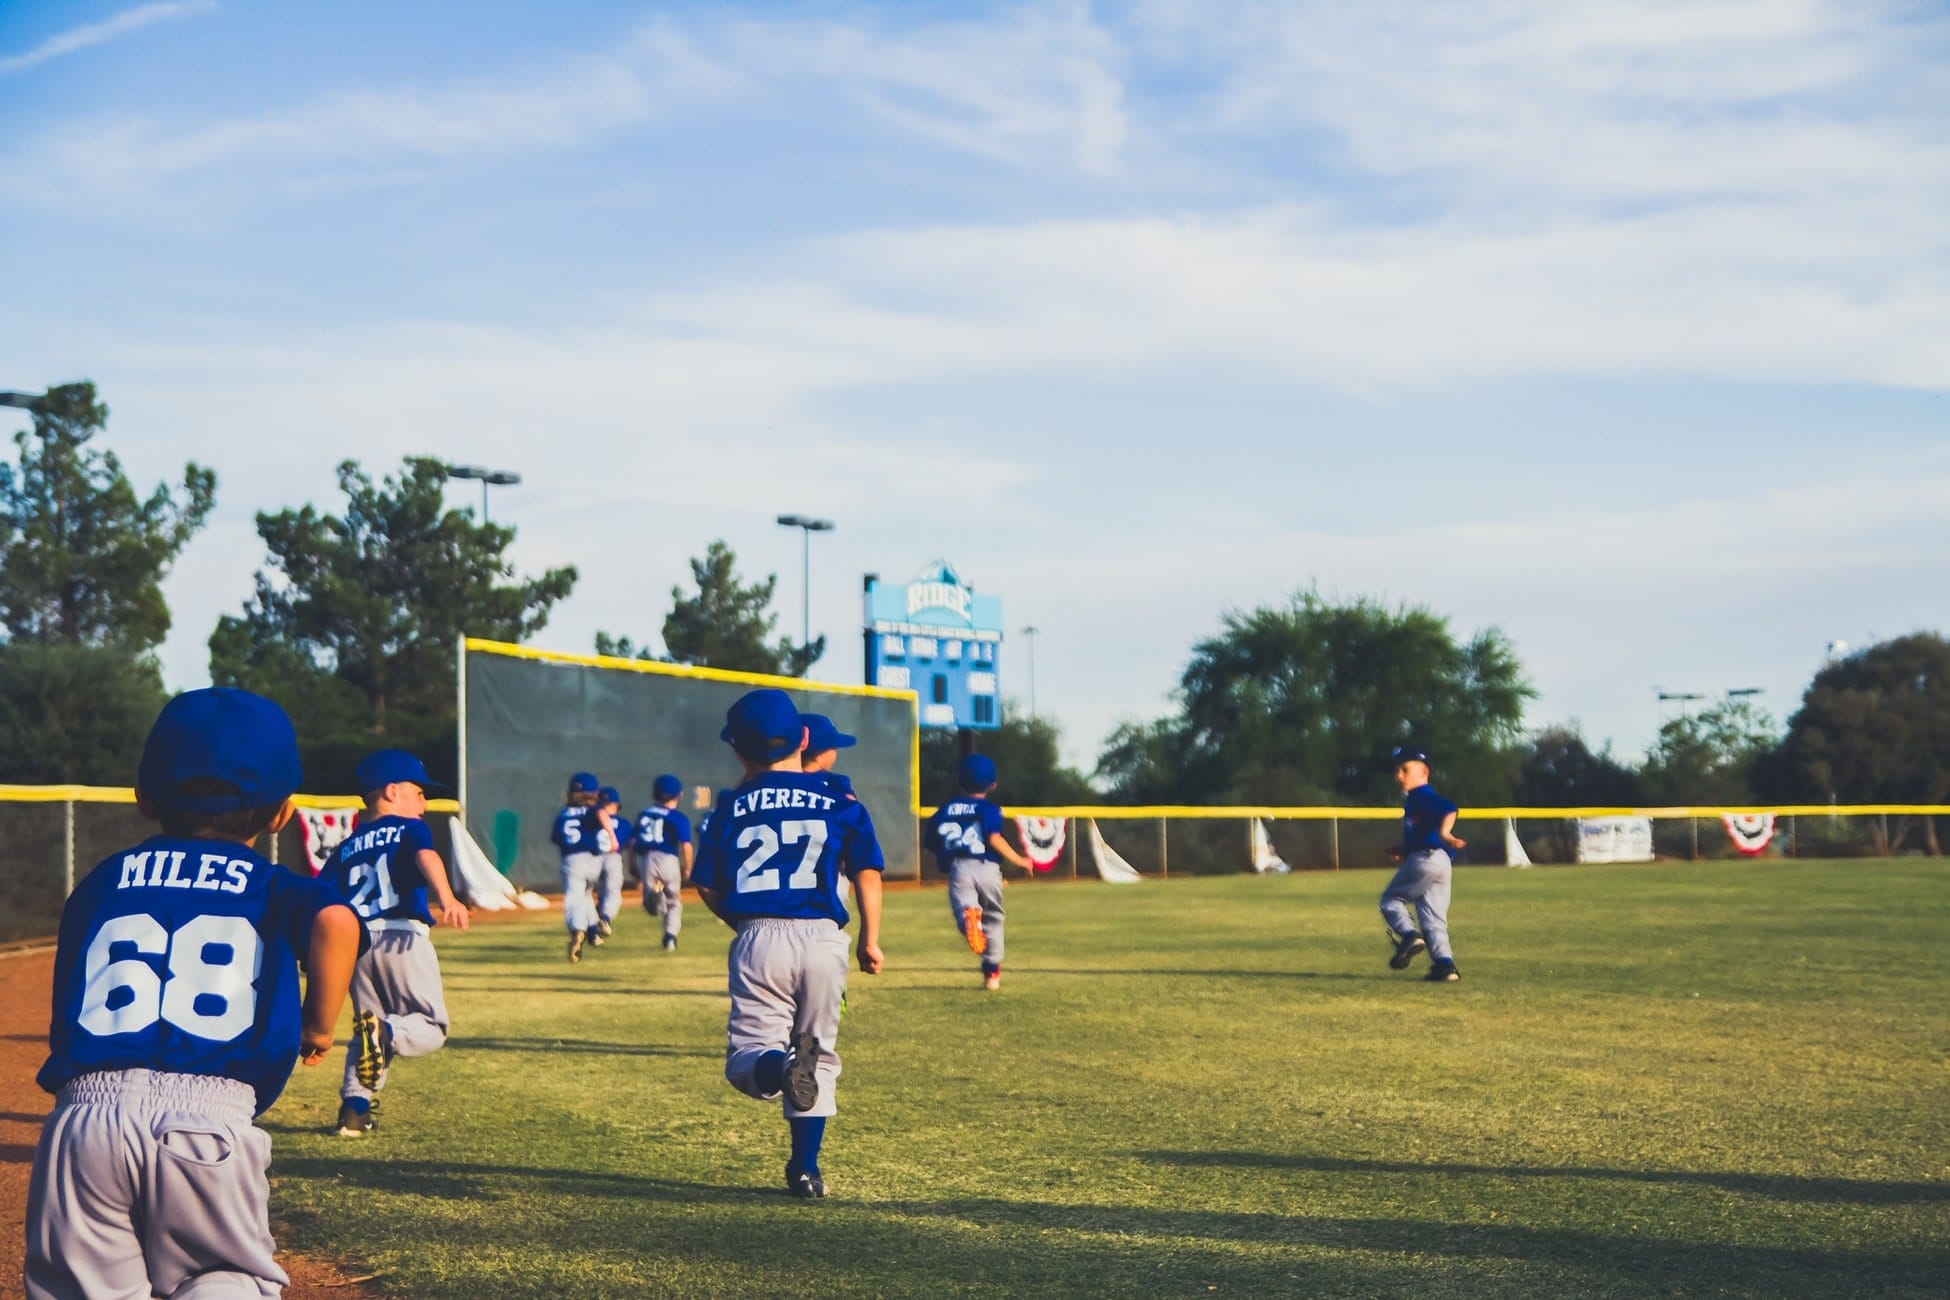 Youth Baseball Practice Plans Min